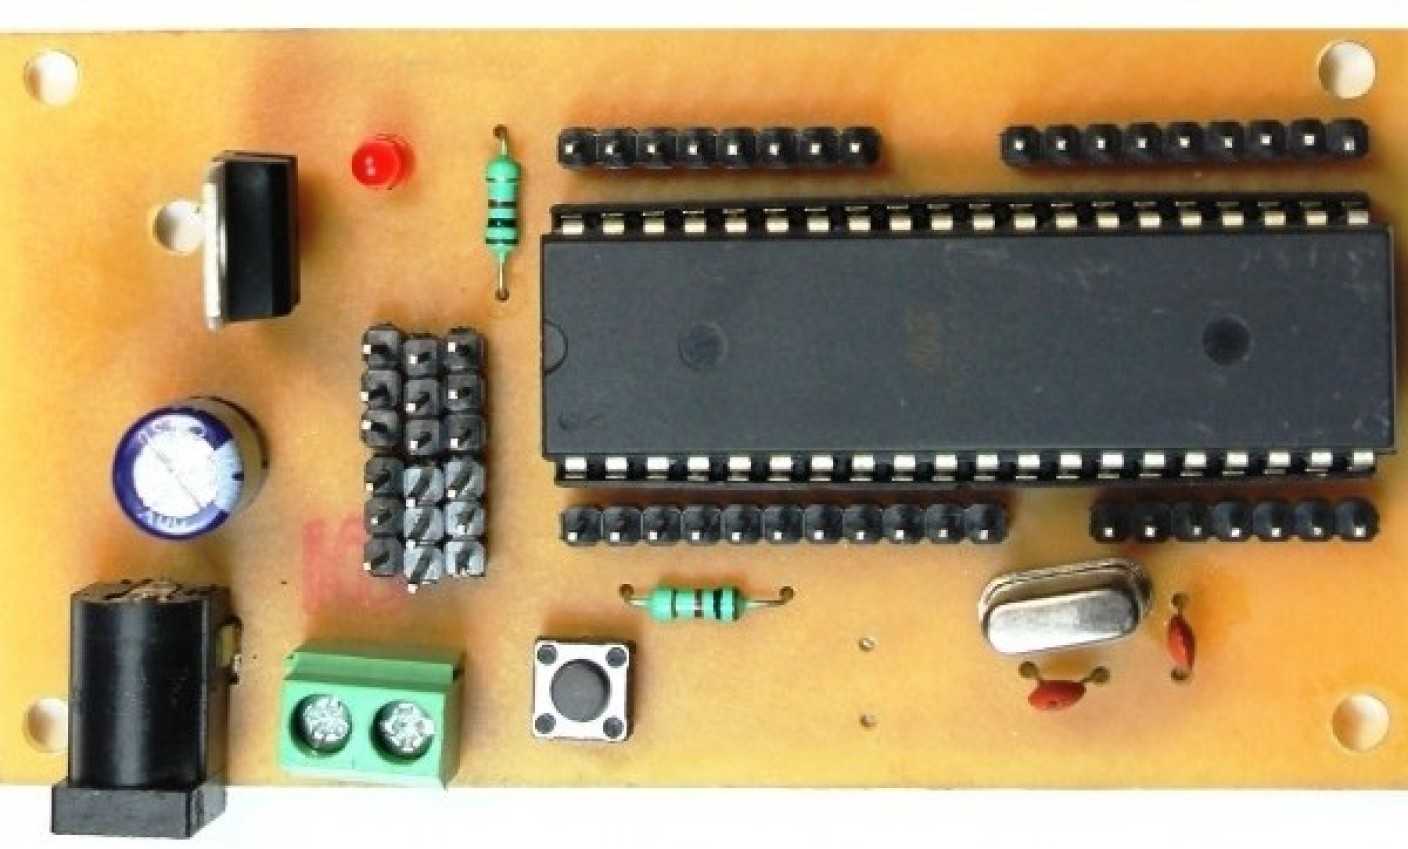 Robomart atmega project board with controller v